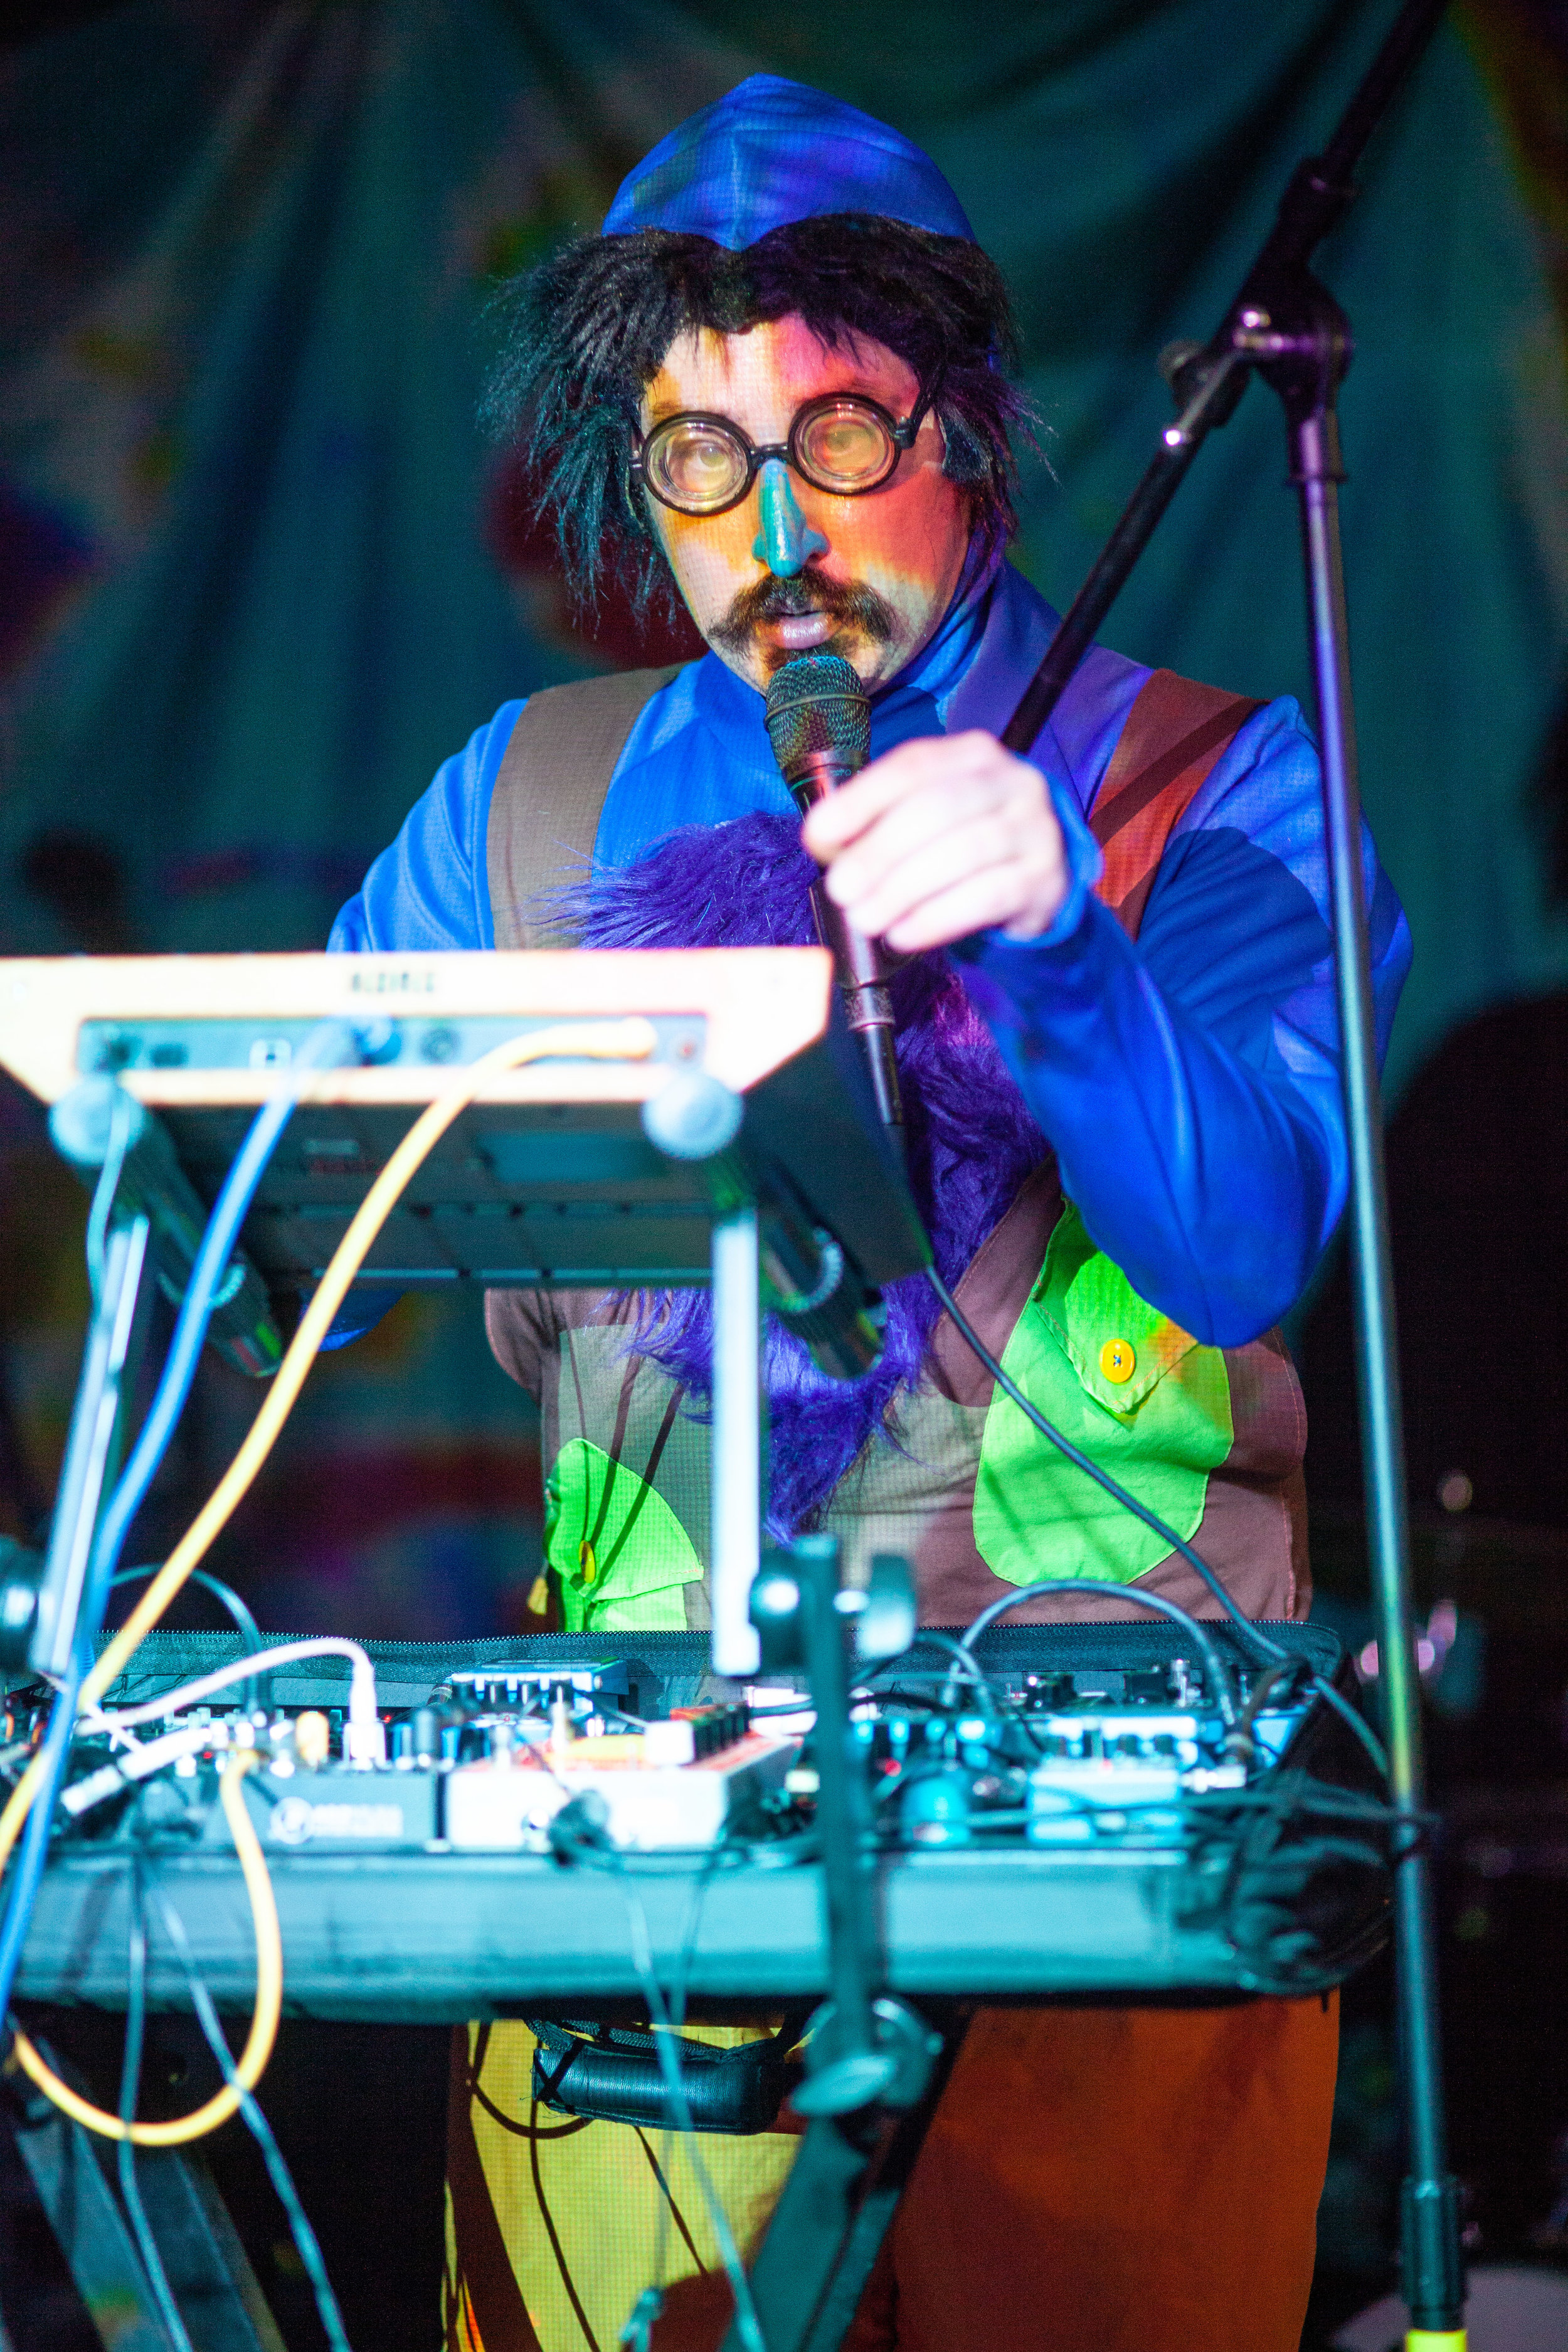 psychfestday1-17.jpg